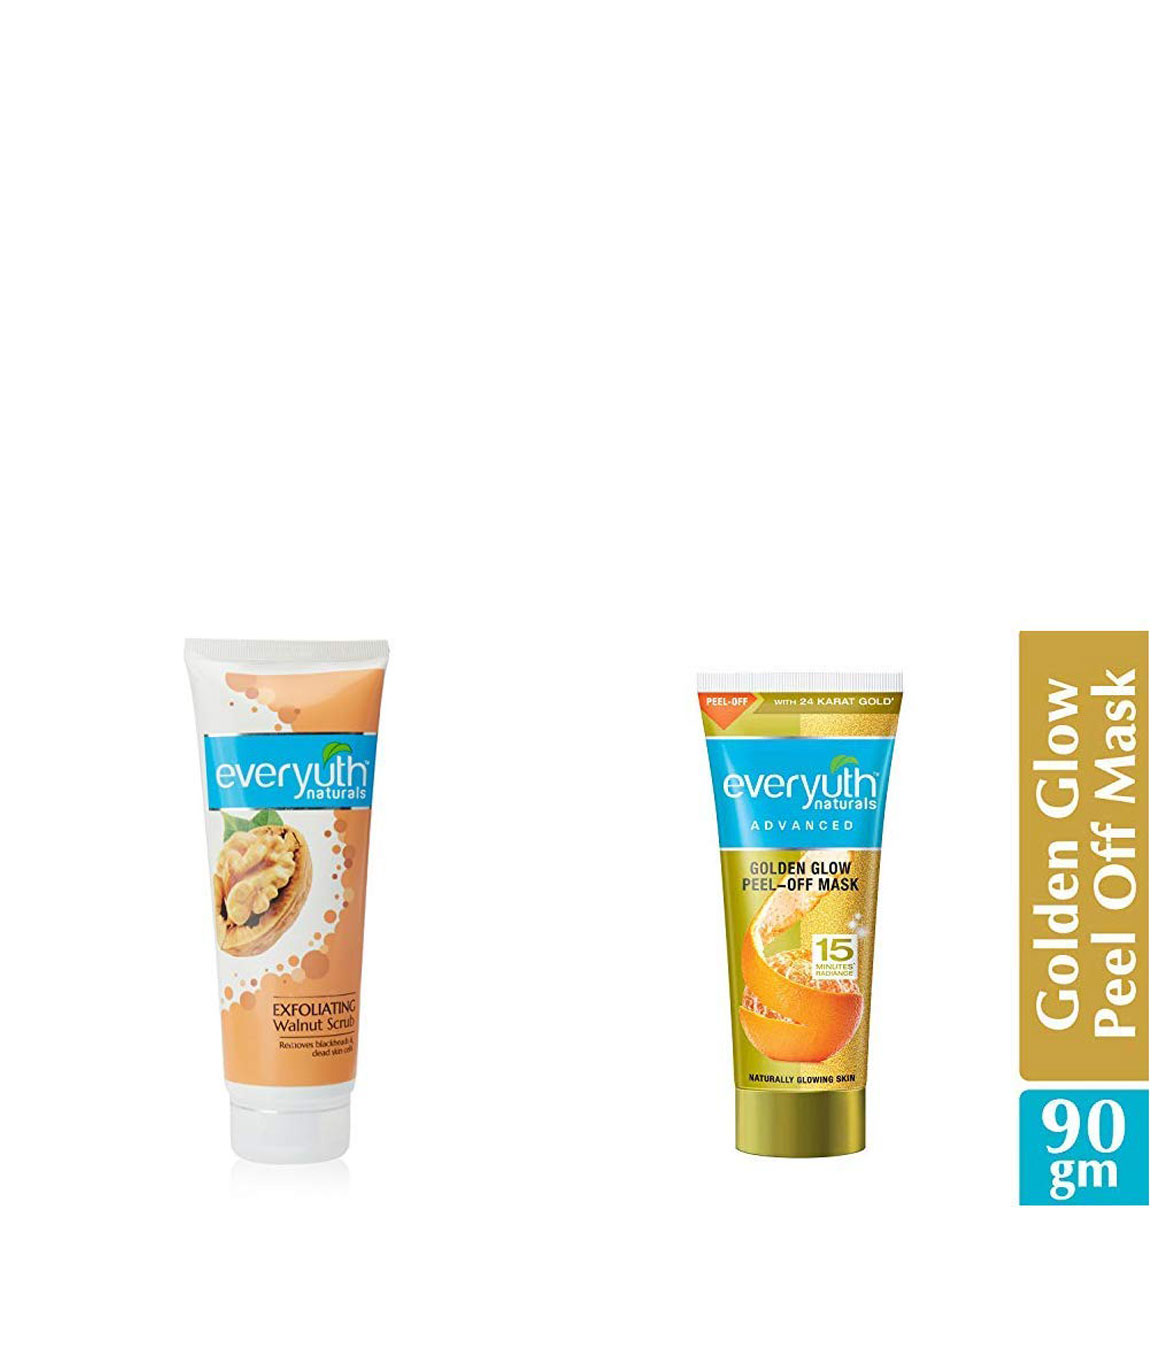 Everyuth Naturals Exfoliating Walnut Scrub with nano Multi Vit A, 200g & Advanced Golden Glow Peel-off Mask with 24K Gold, 90gm Combo